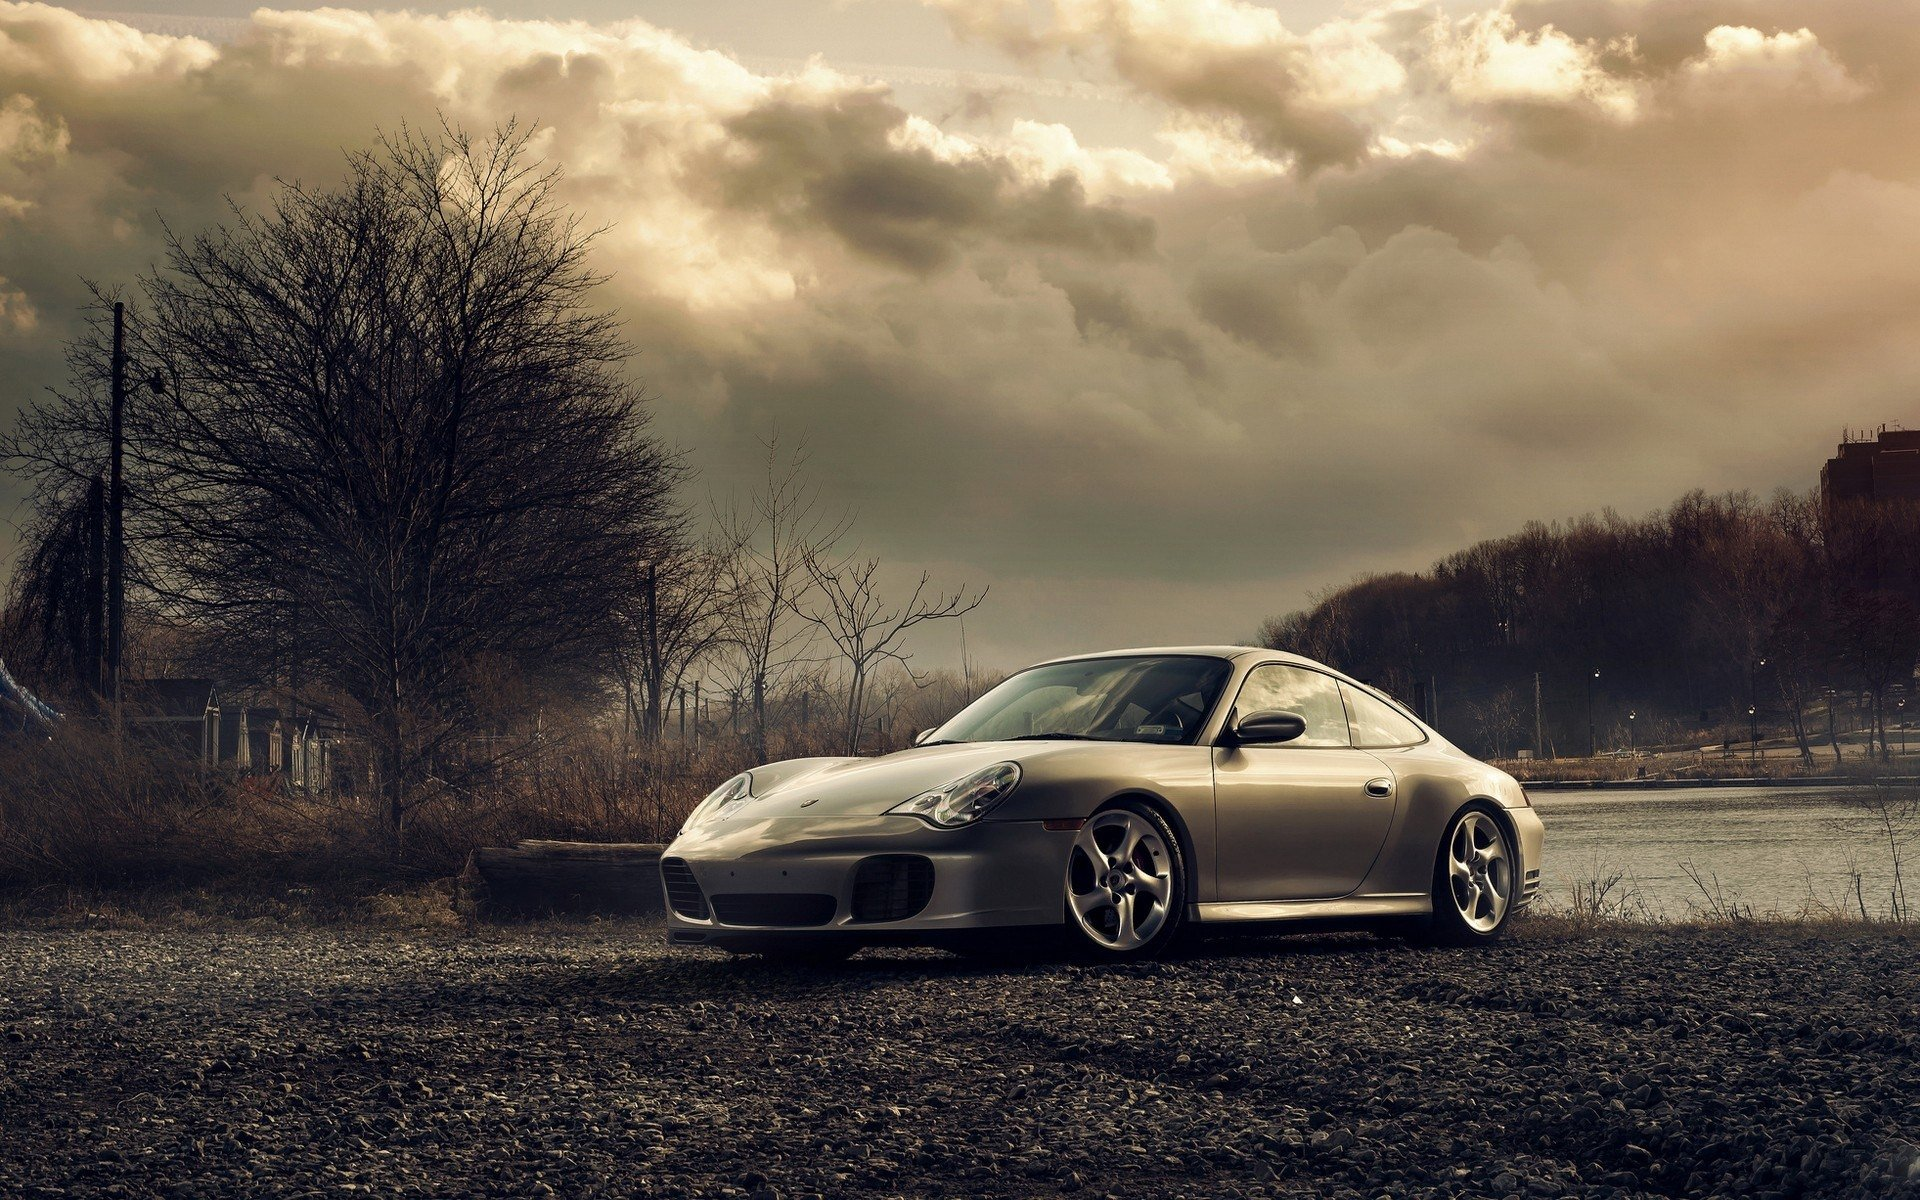 151 Porsche 911 Hd Wallpapers Background Images Wallpaper Abyss